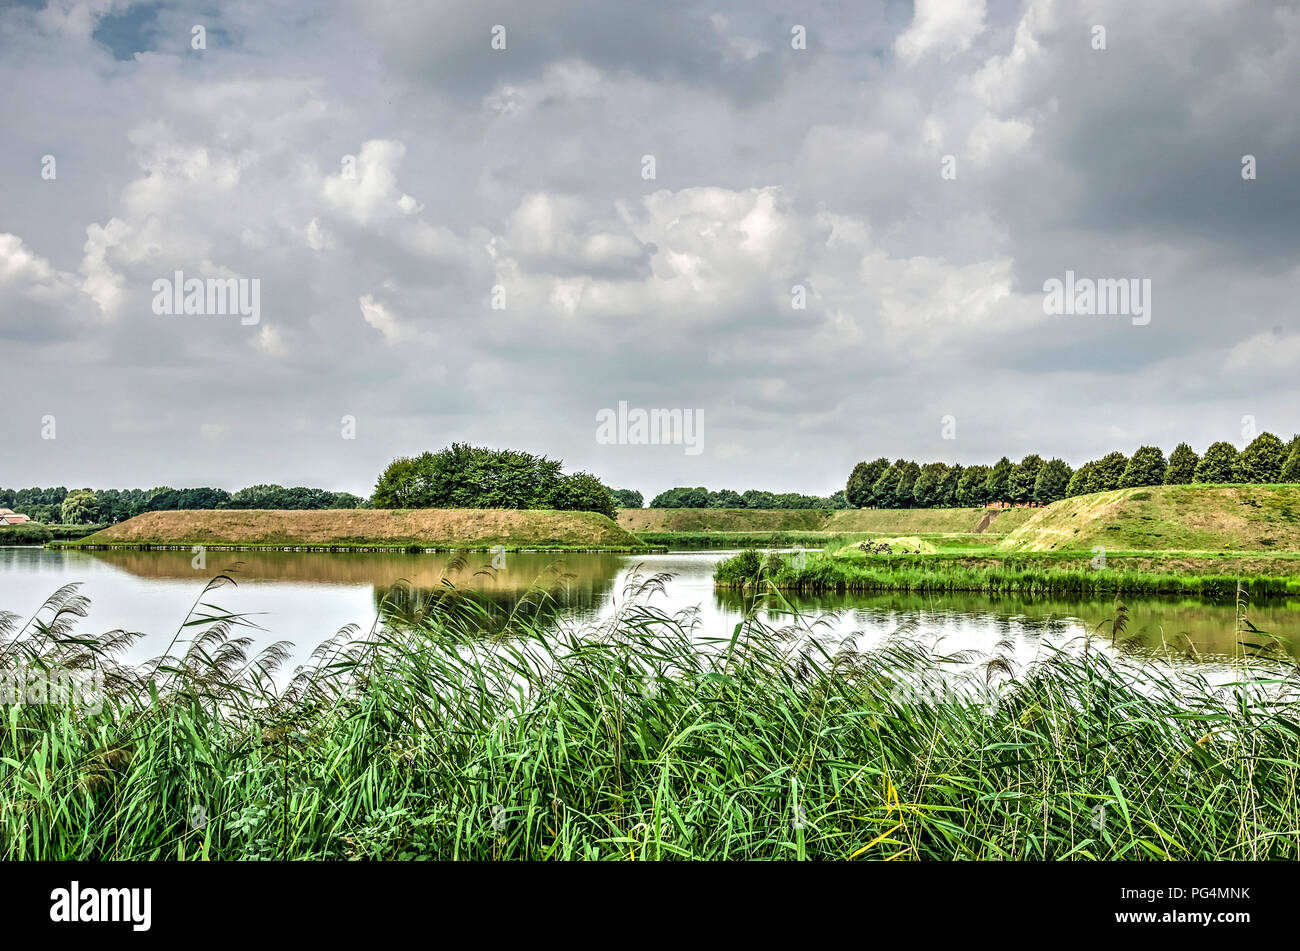 View across a bank with reeds towards the moats and ramparts around the fortified town of Leusden, The Netherlands - Stock Image